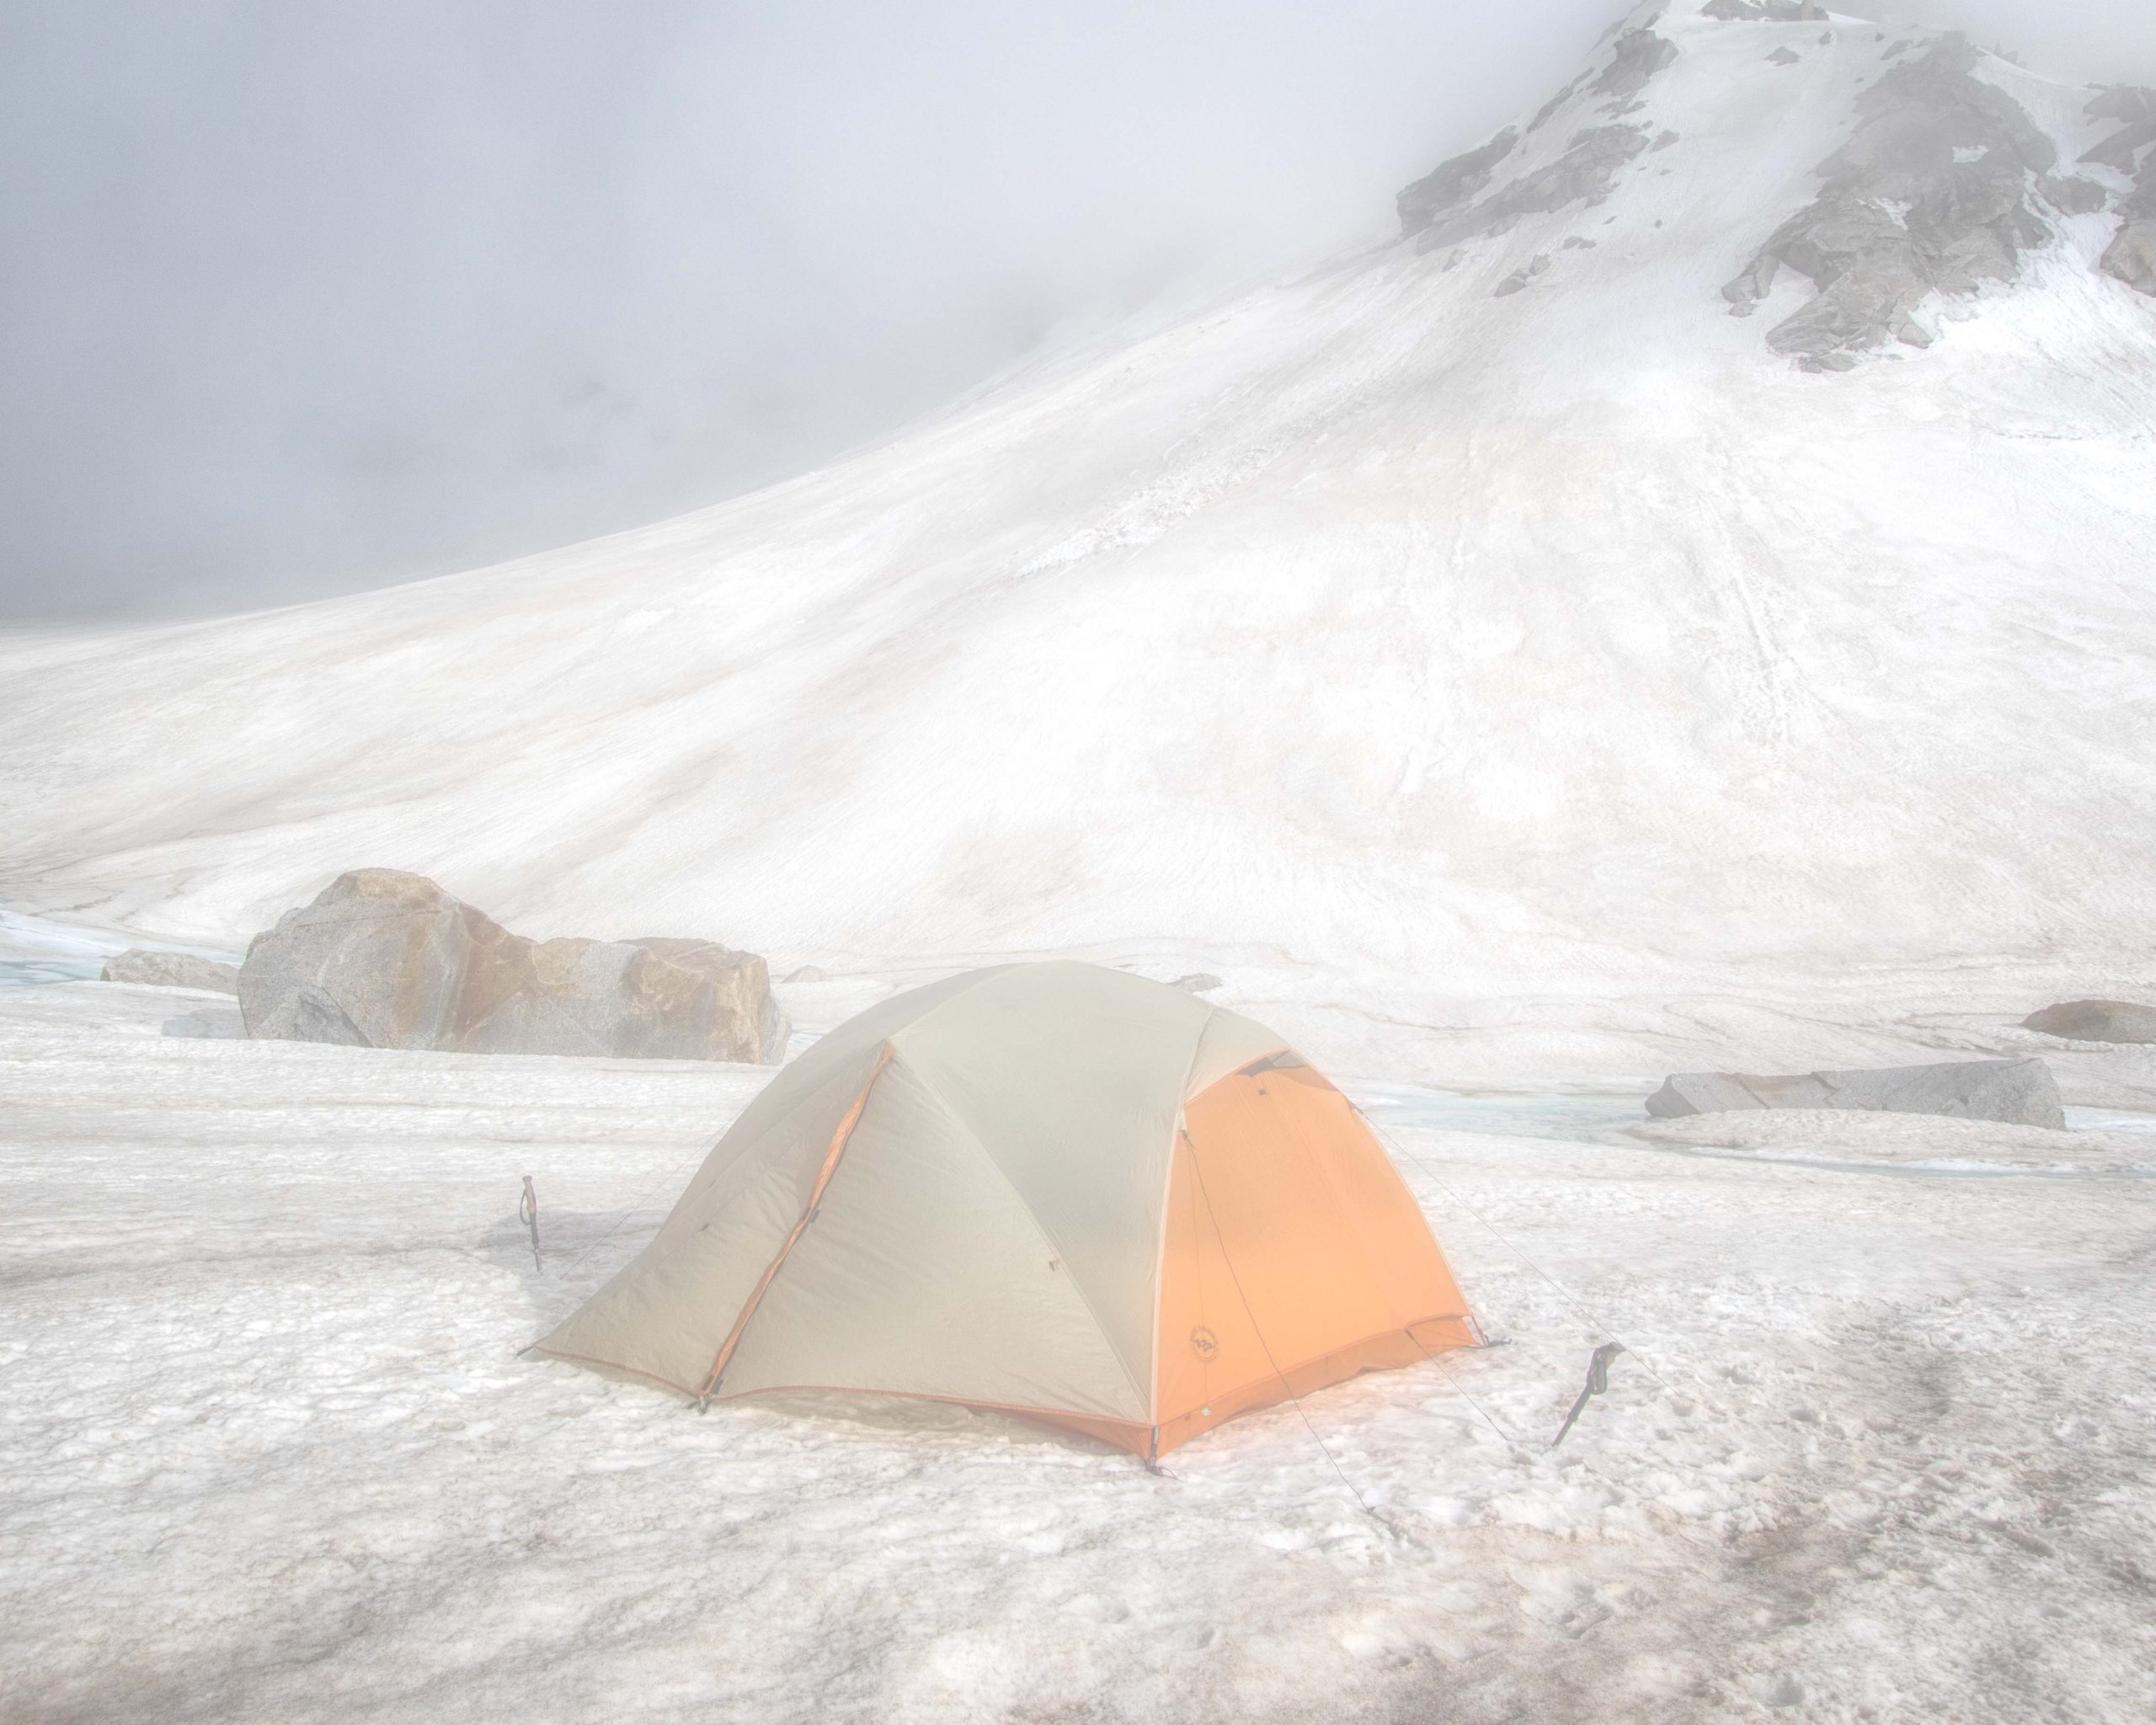 a tent on the snowy mountains